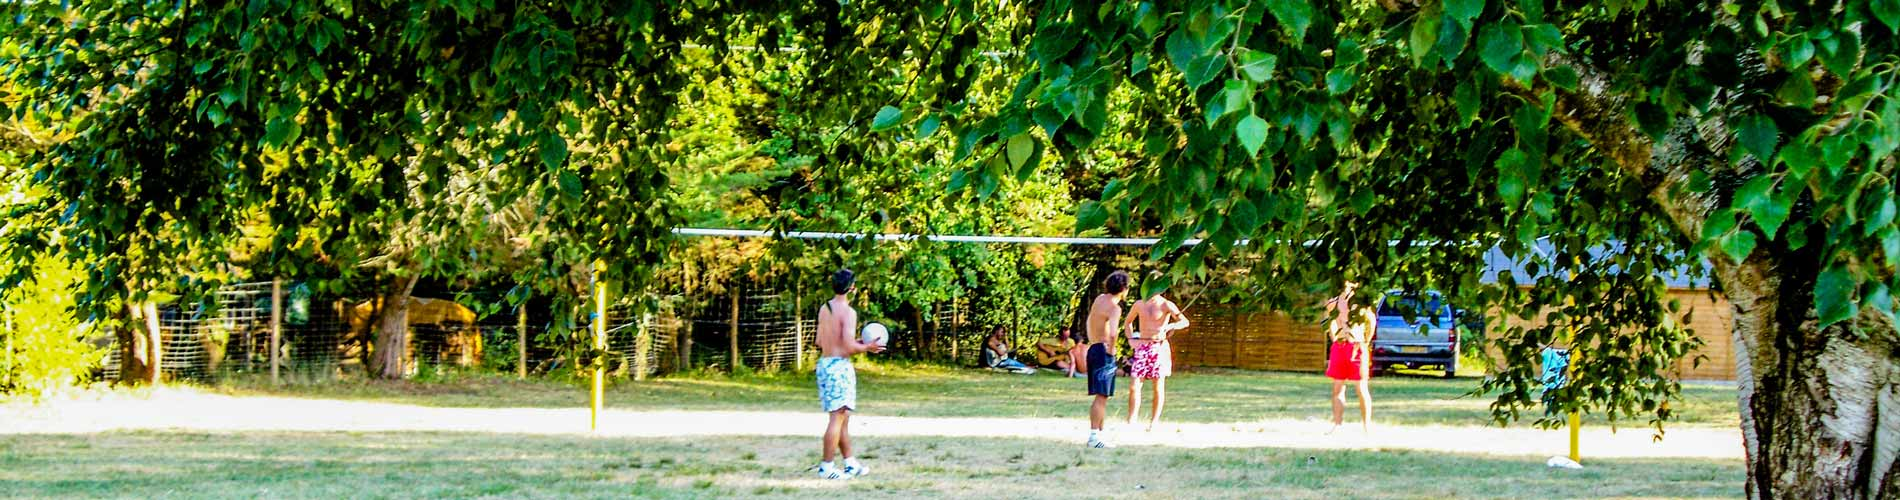 Camping 3 toiles gironde vacances camping au lac d for Camping gironde piscine